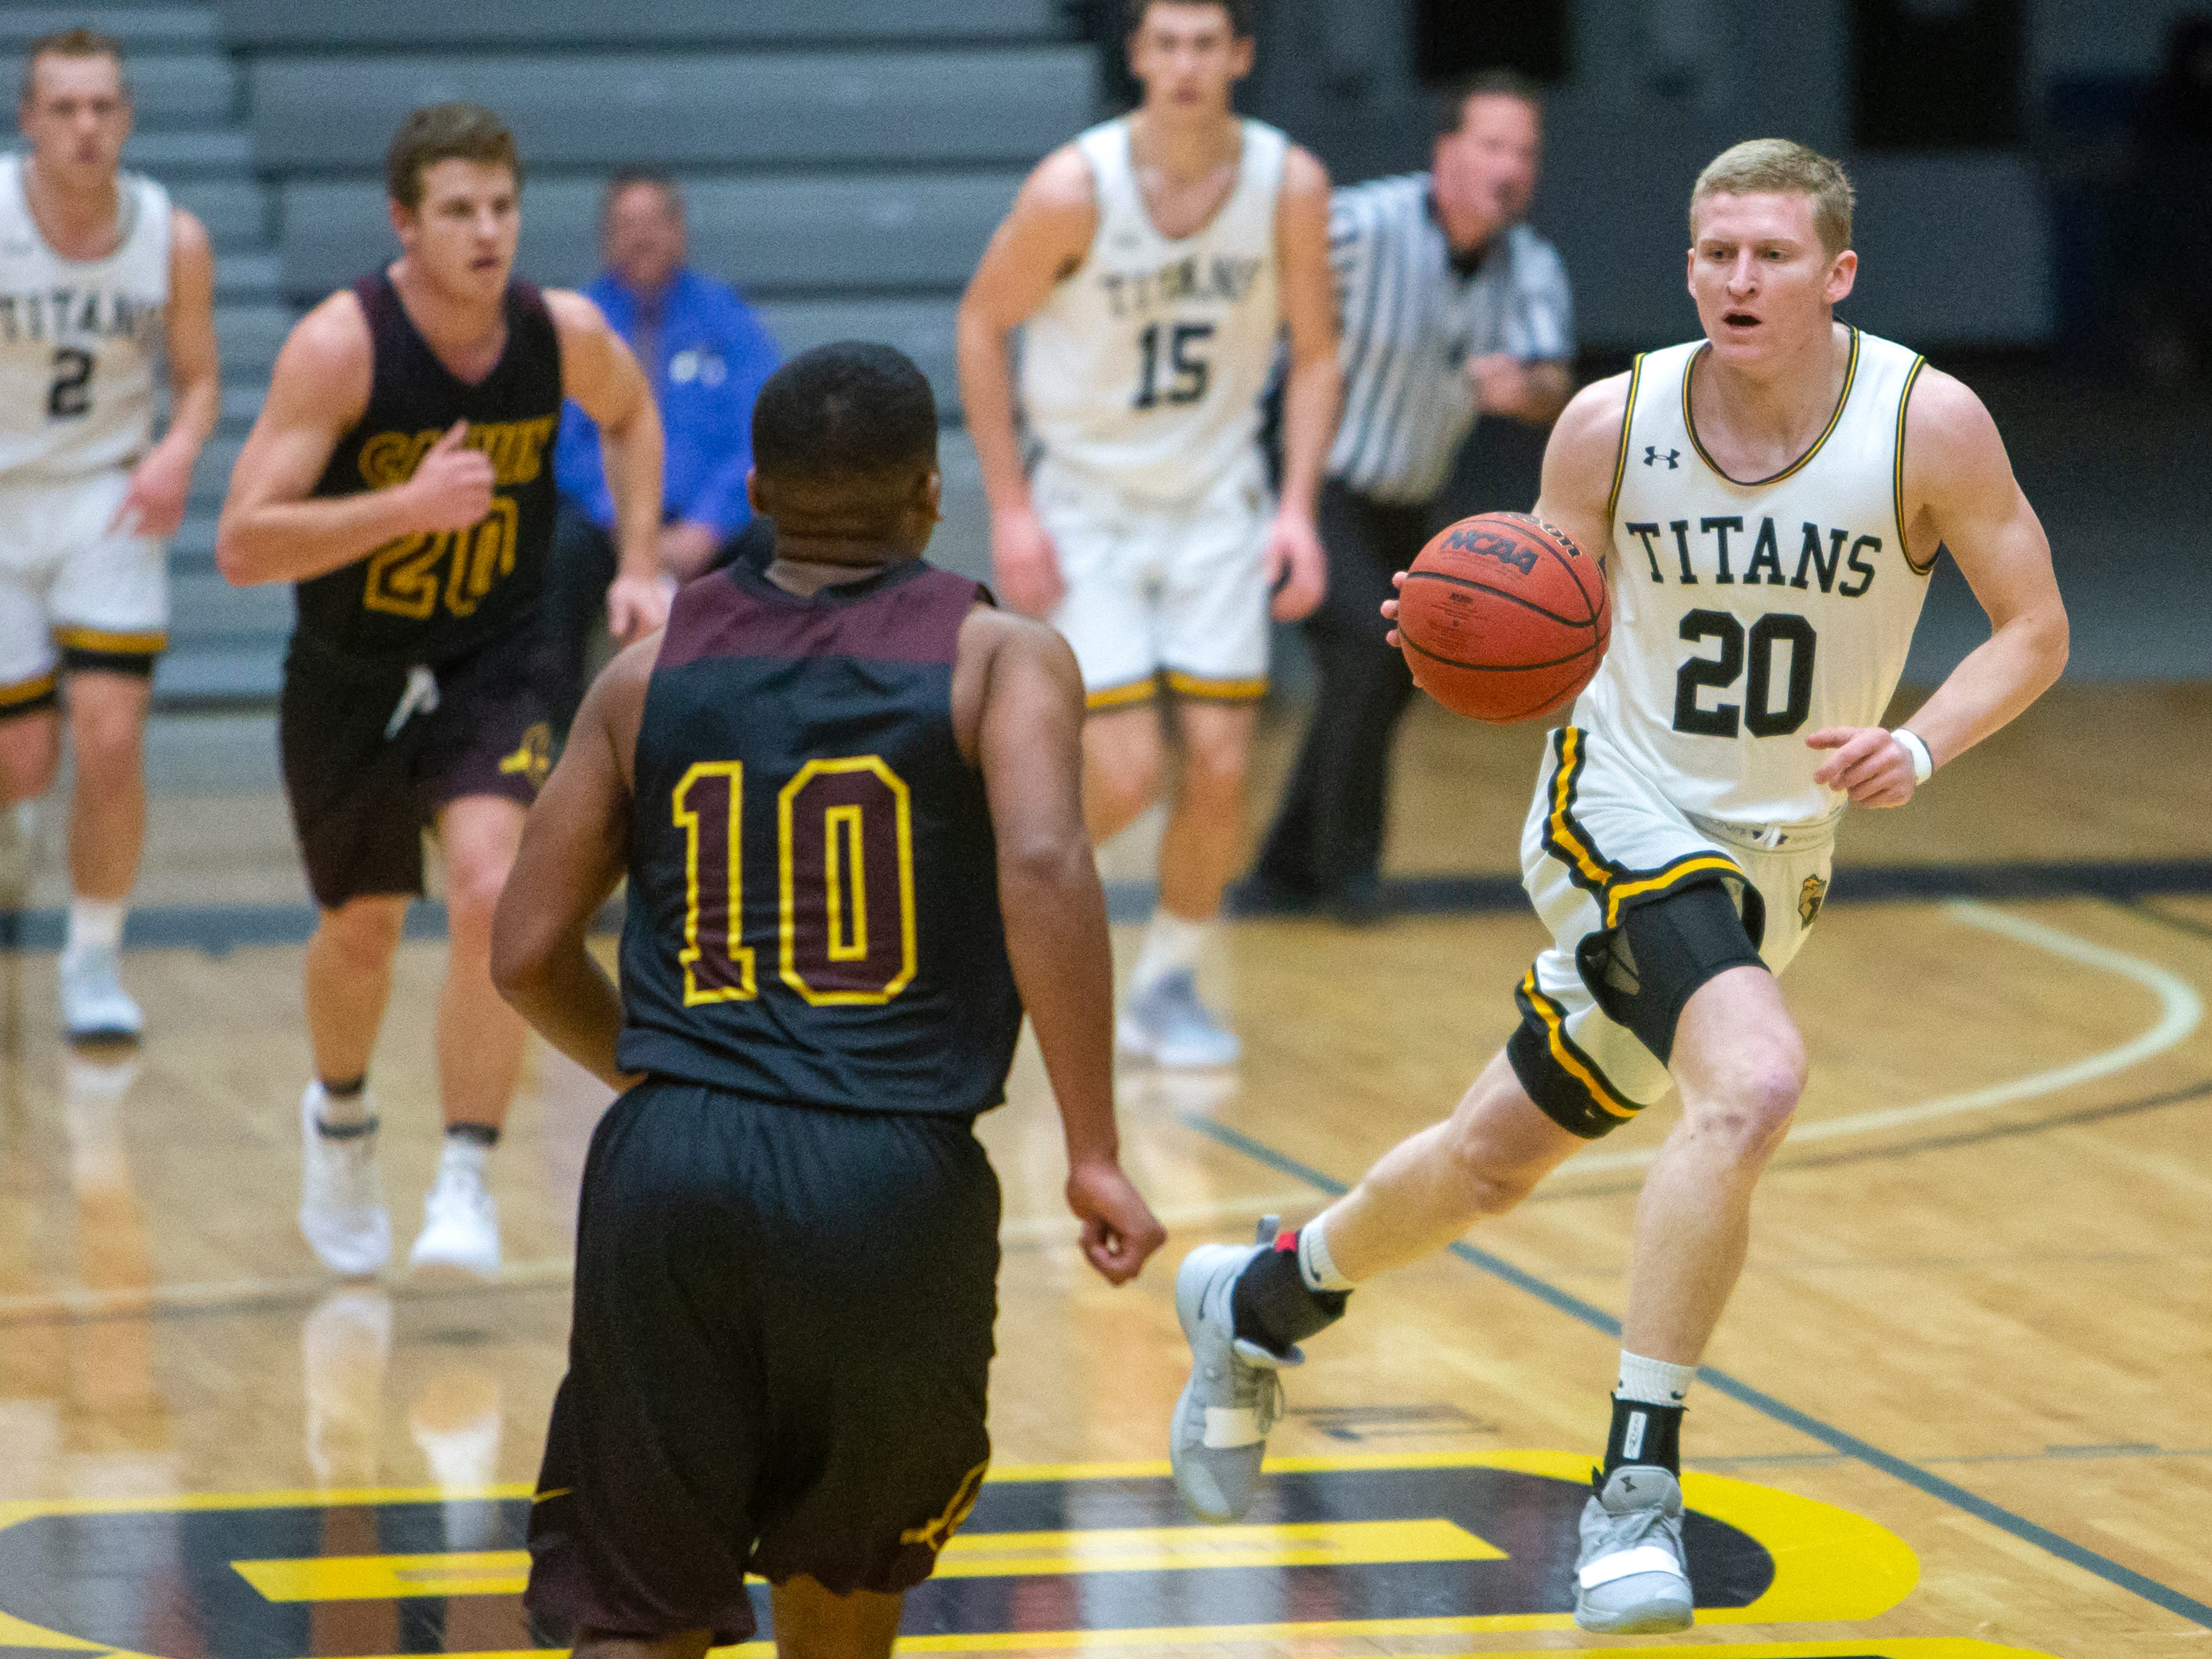 UW-Oshkosh's Connor Duax moves the ball across the court at the Kolf Sports Center on Saturday, December 8, 2018.